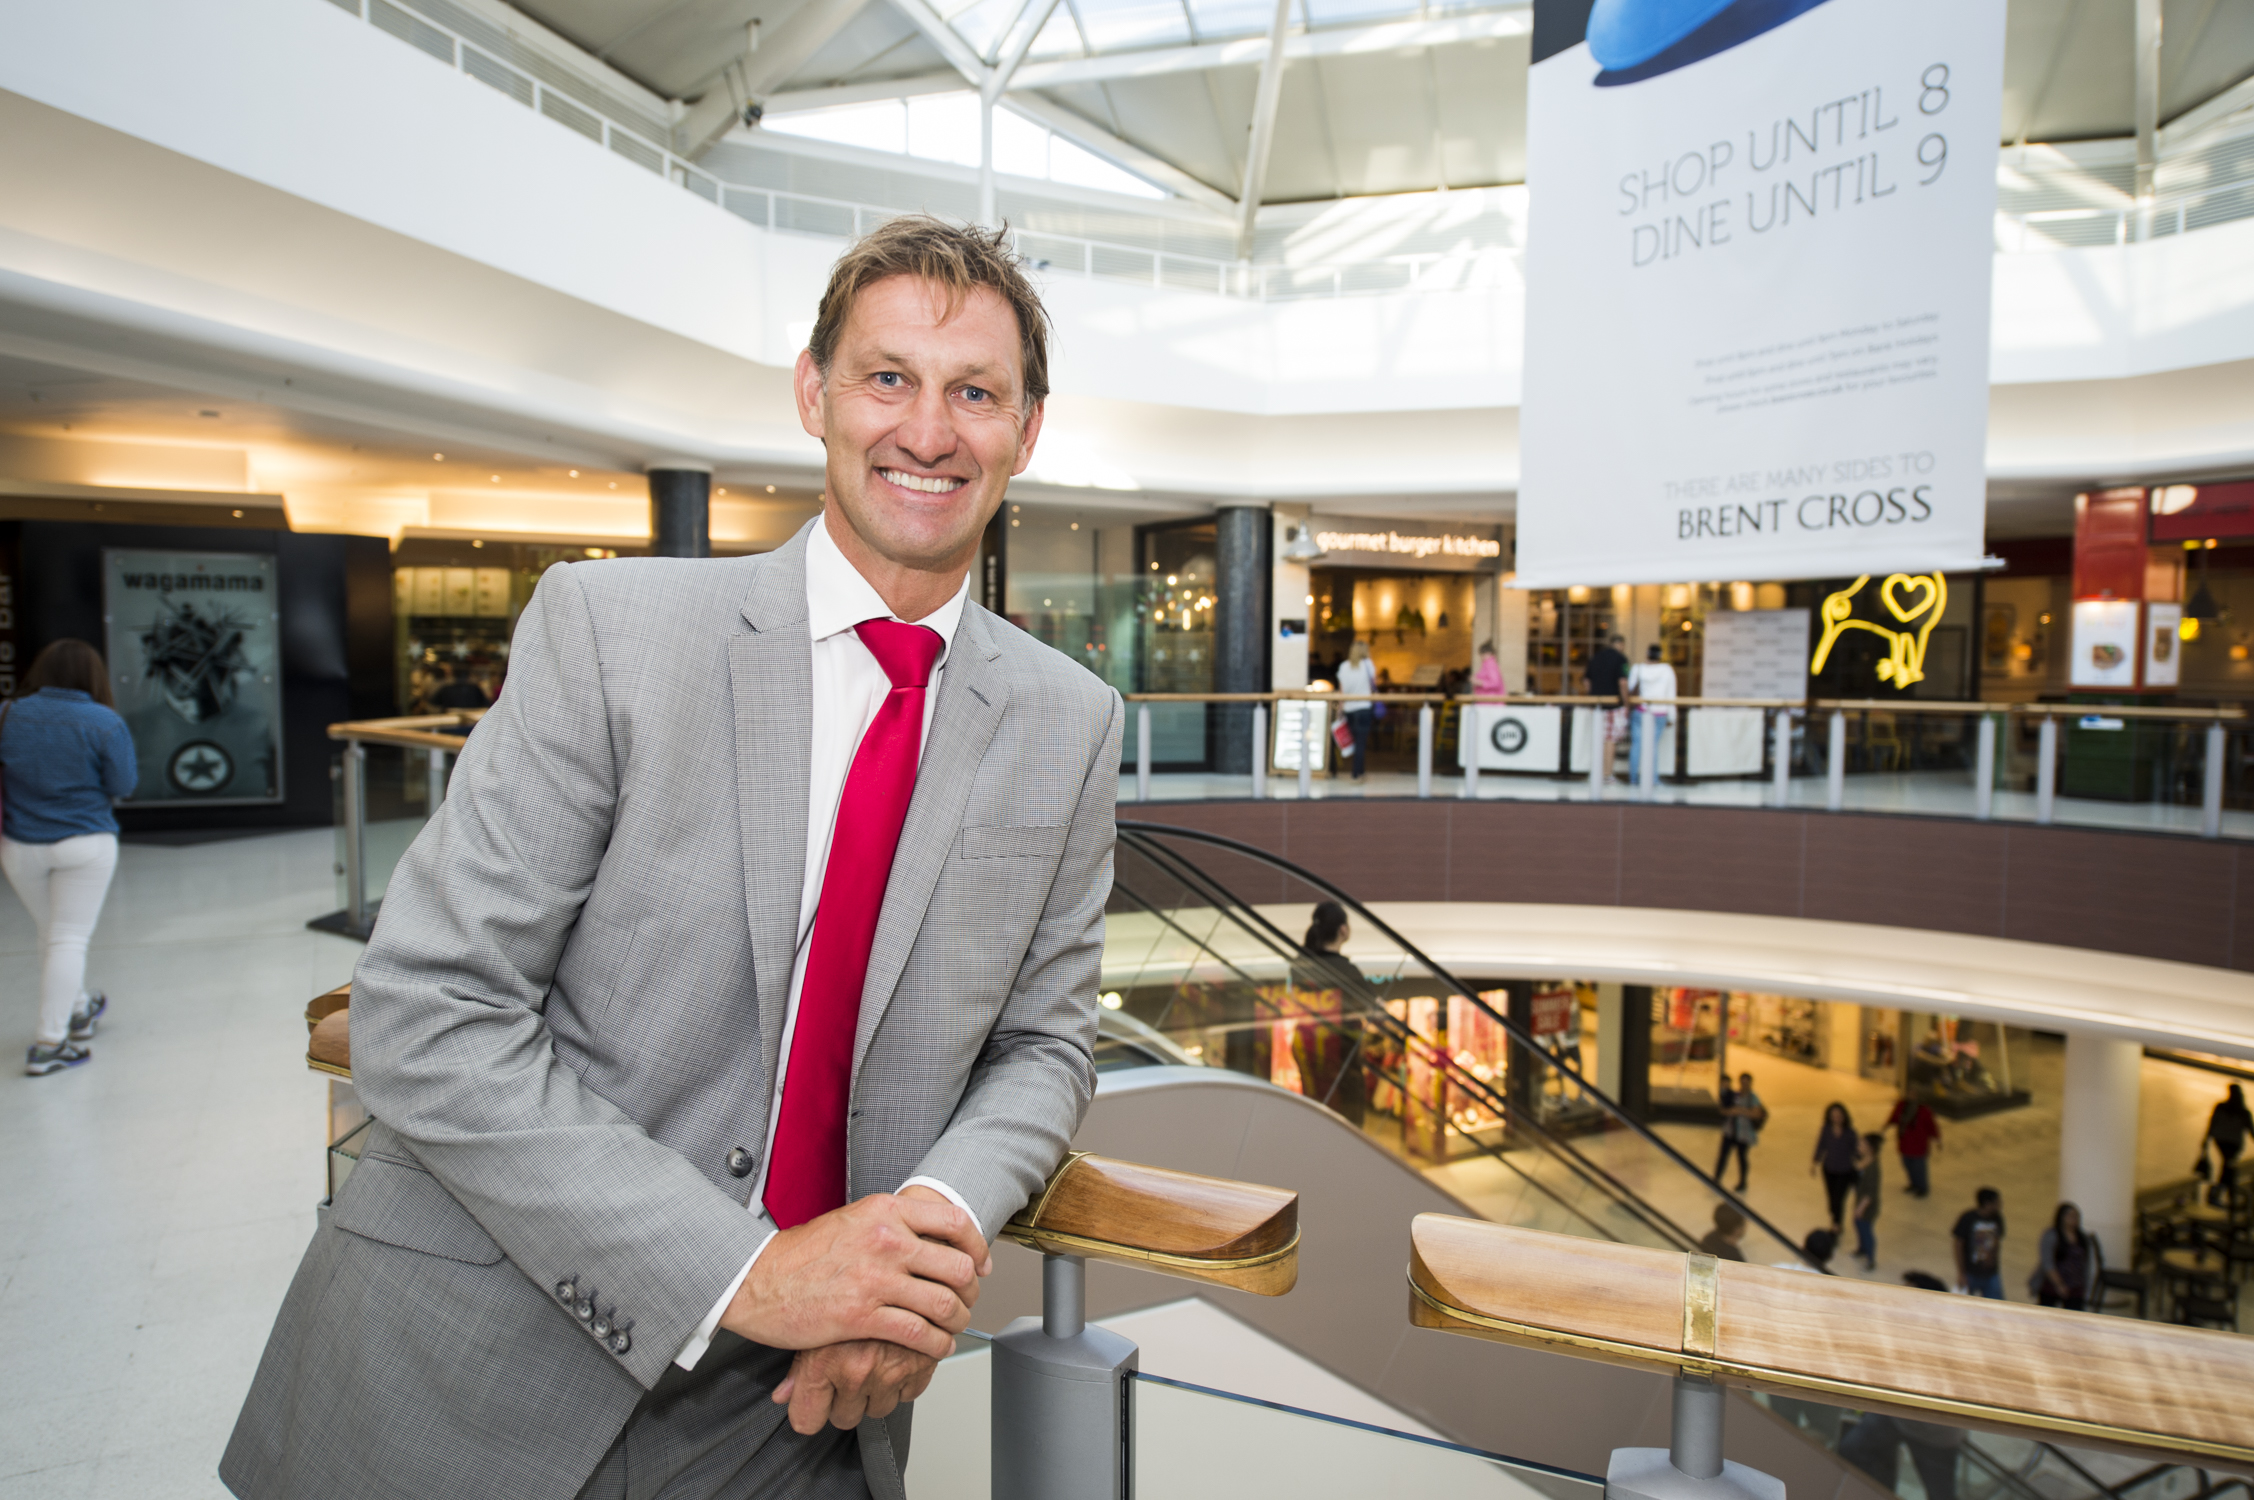 Former England and Arsenal captain Tony Adams at Brent Cross